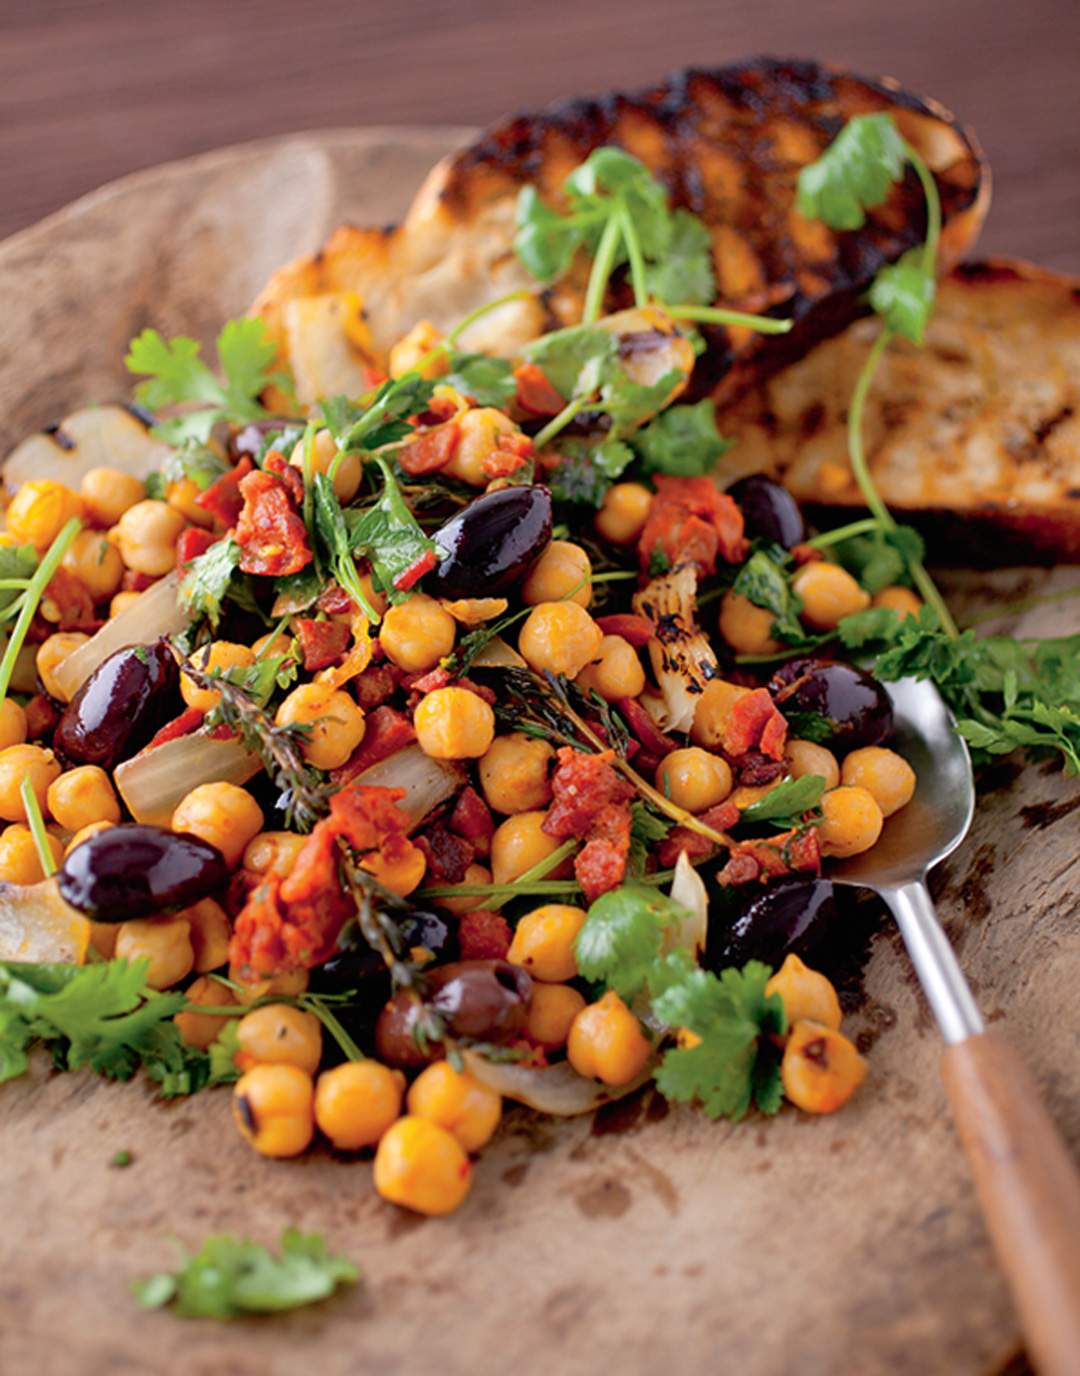 Chorizo and Chickpeas with Charred Onions, Black Olives, and Herbs Recipe